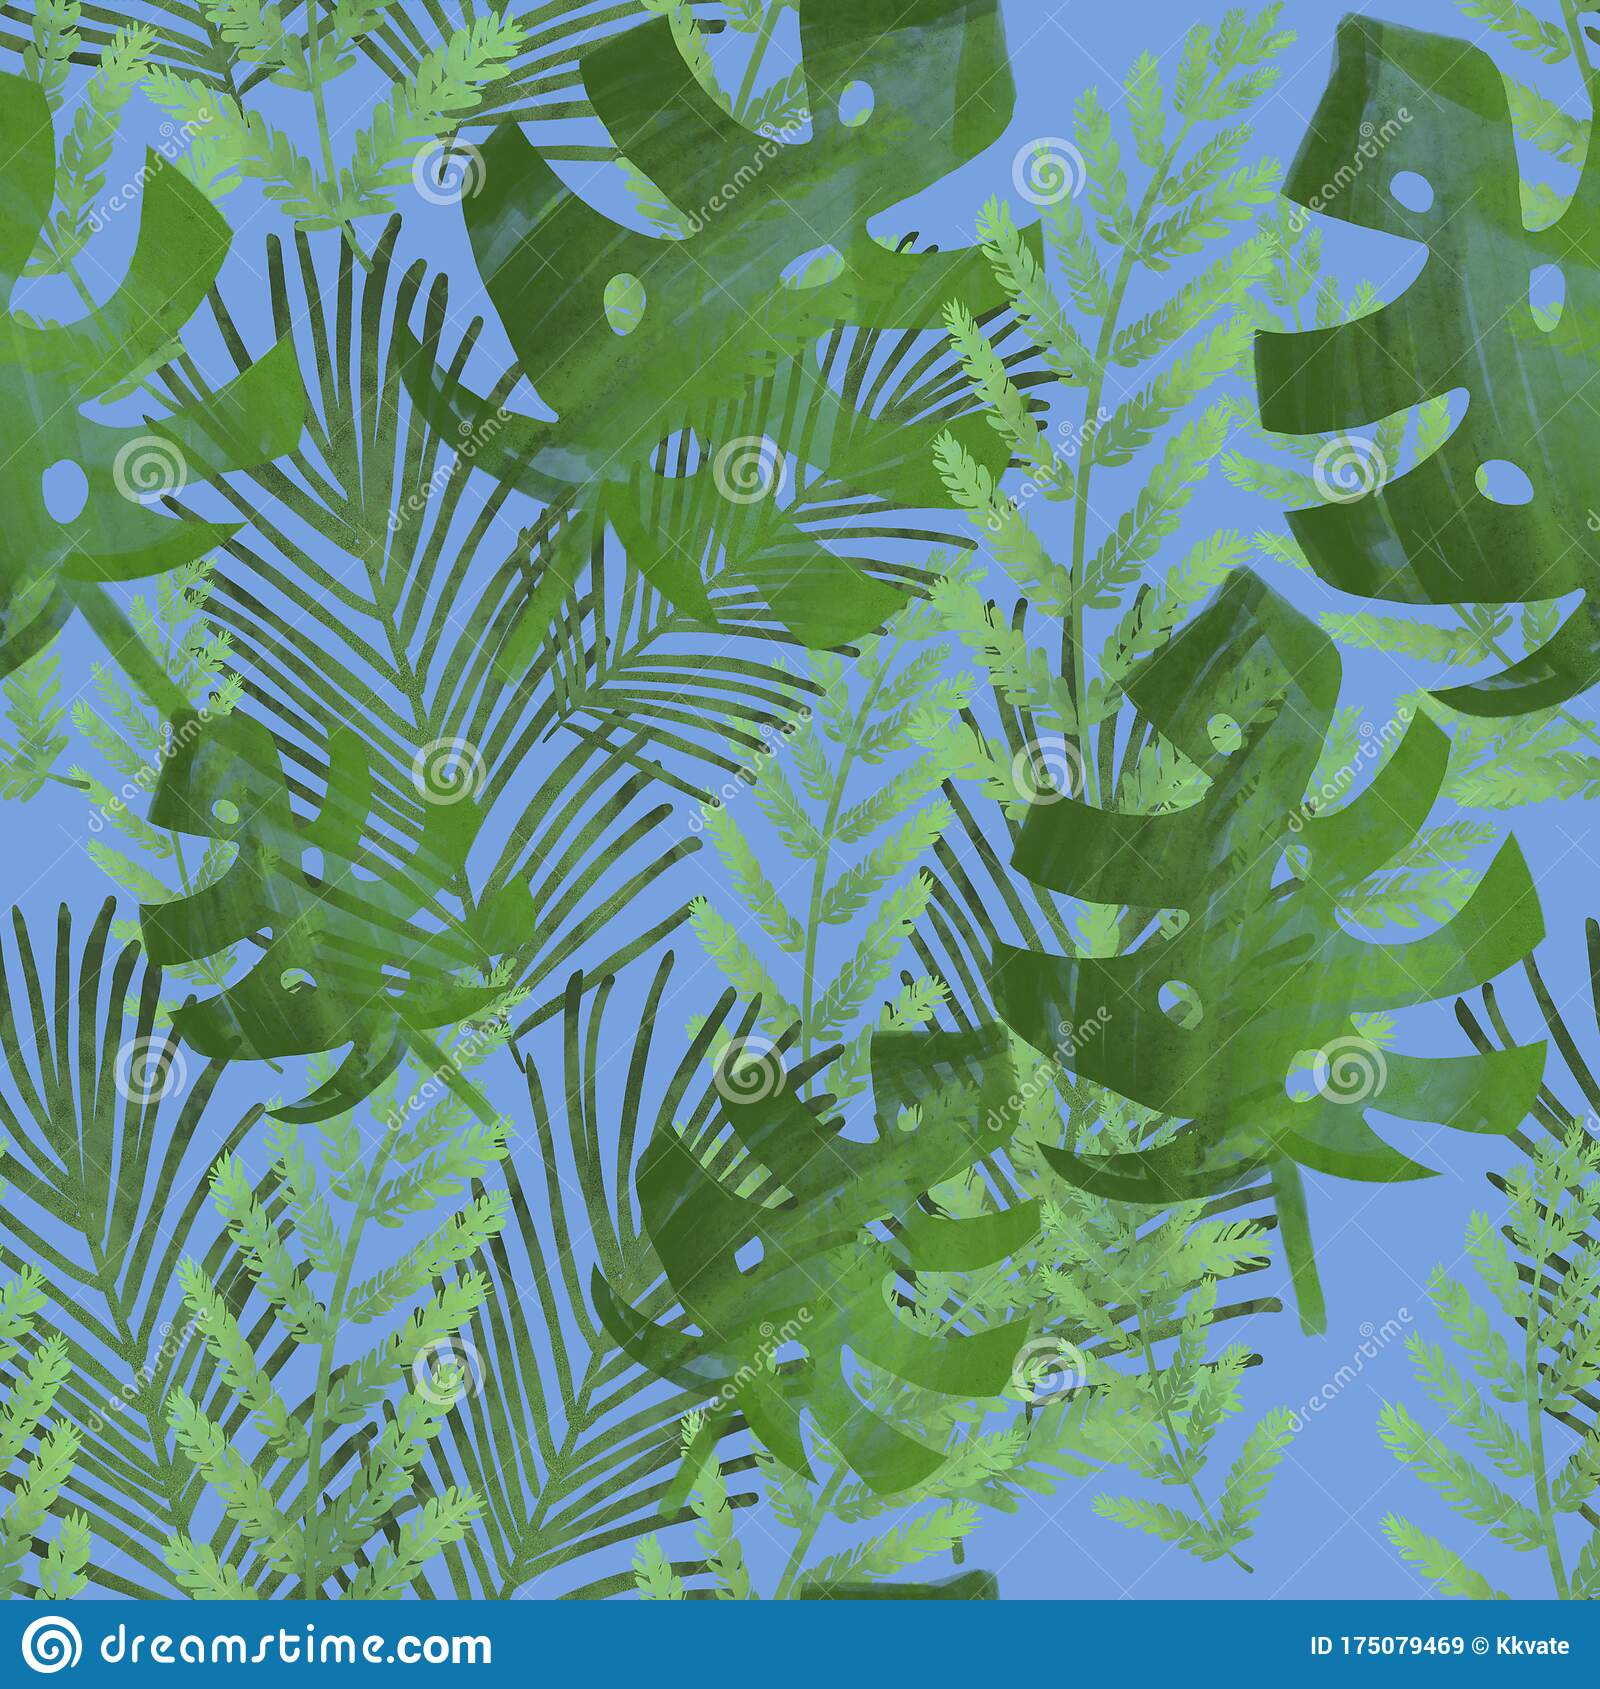 Background With Green Tropical Leaves Seamless Pattern Monstera Palm Leaves Fern Banana Leaves Print Fabric Design Stock Illustration Illustration Of Packaging Green 175079469 In this post we gather a wonderful vintage collection of hawaiian tropical leaf prints including <p>you might already have notice the raise of all type of palm trees, tropical leaf prints and. dreamstime com